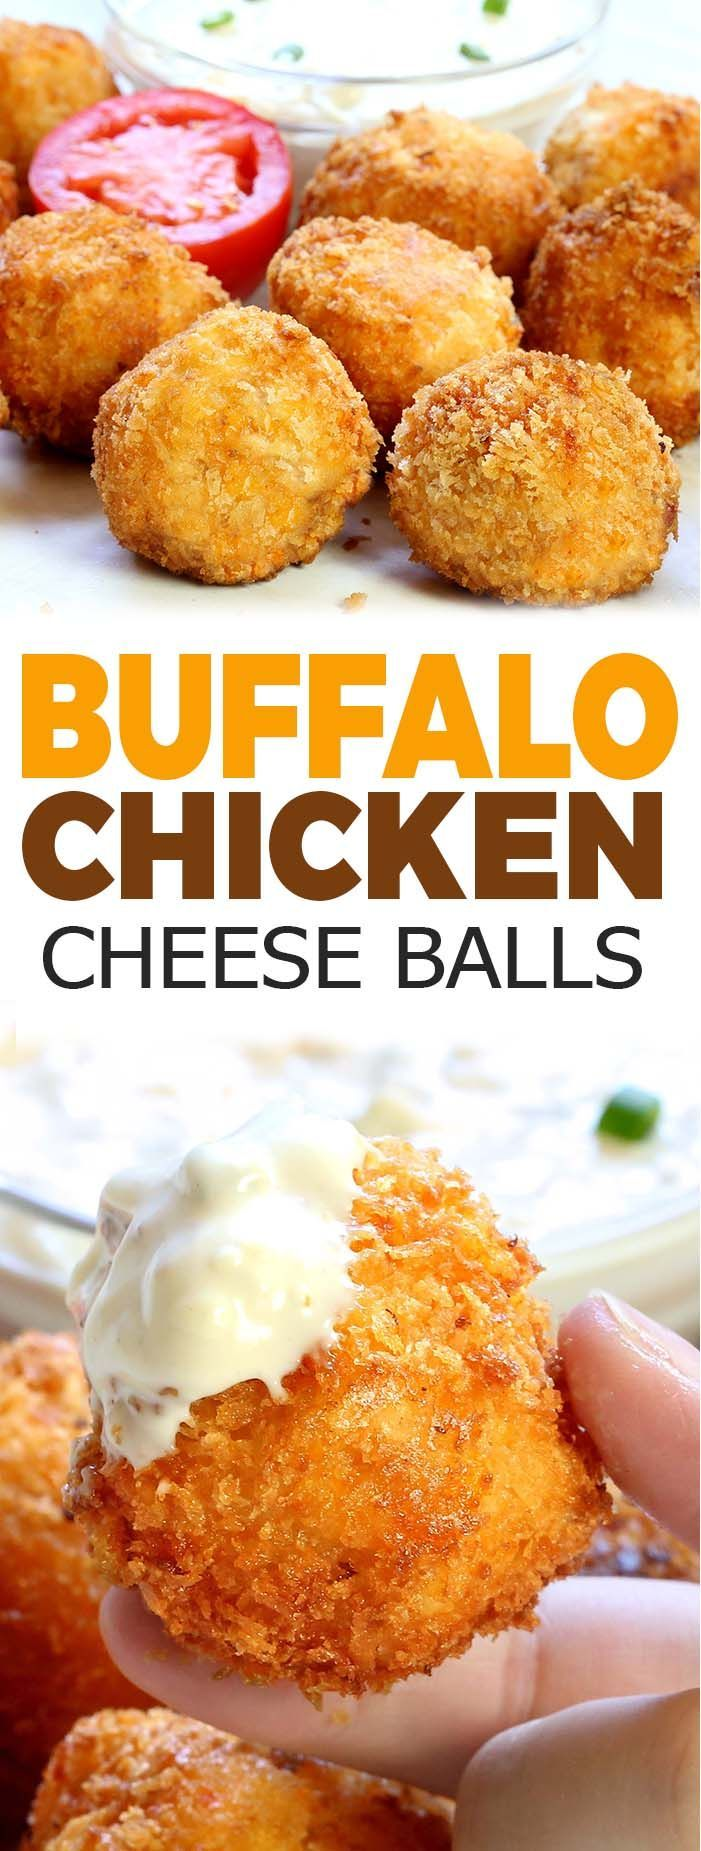 Easy Buffalo Chicken Cheese Balls - Sugar Apron